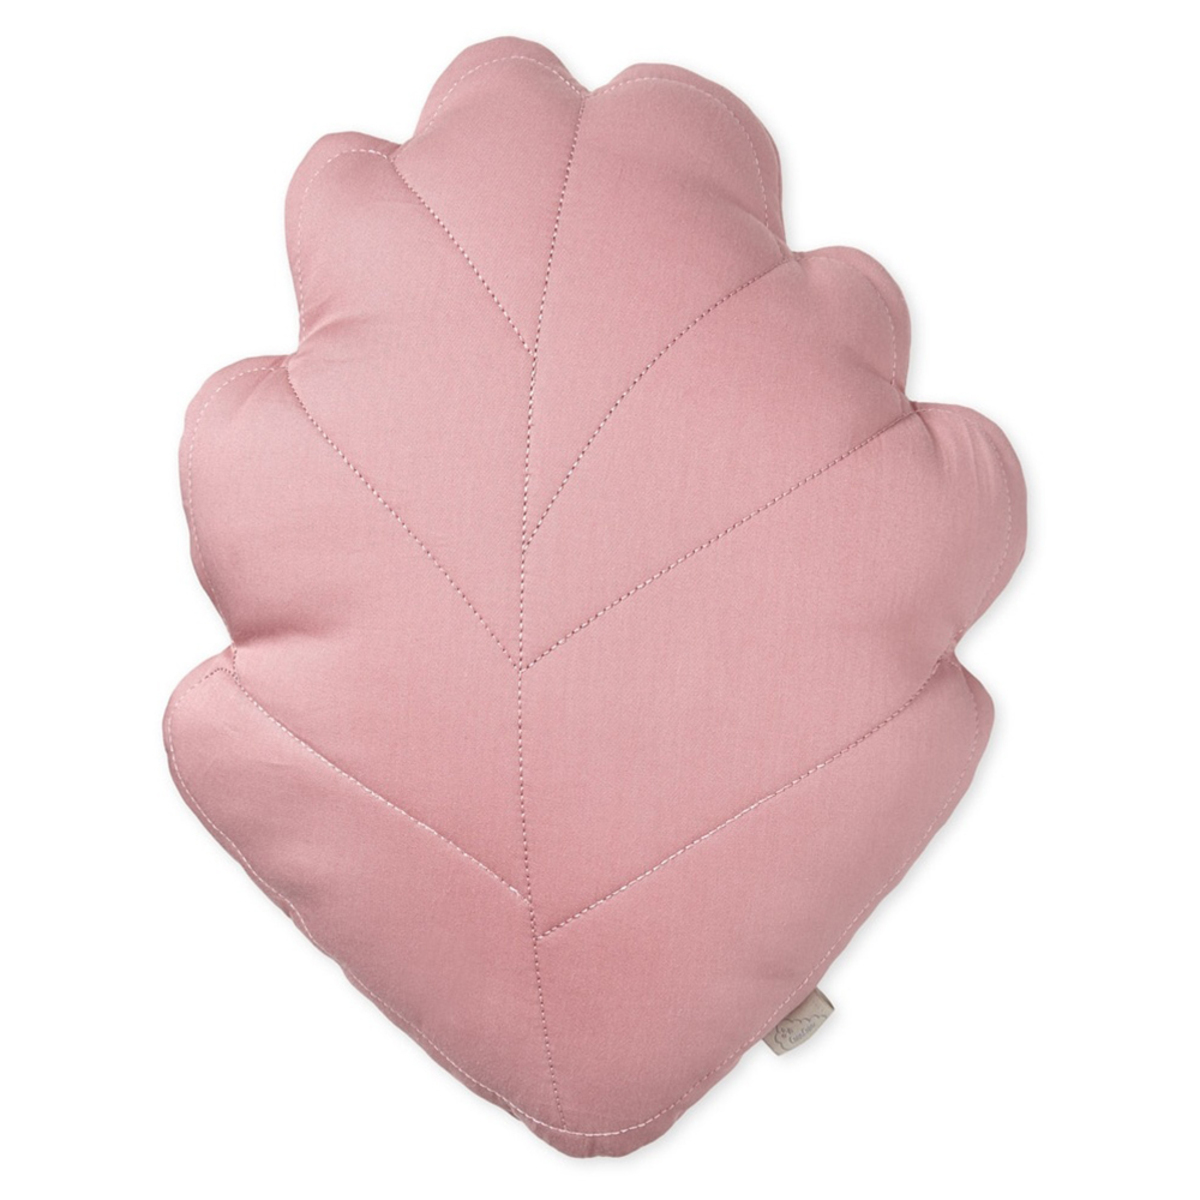 Coussin Coussin Feuille - Rose Berry Coussin Feuille - Rose Berry